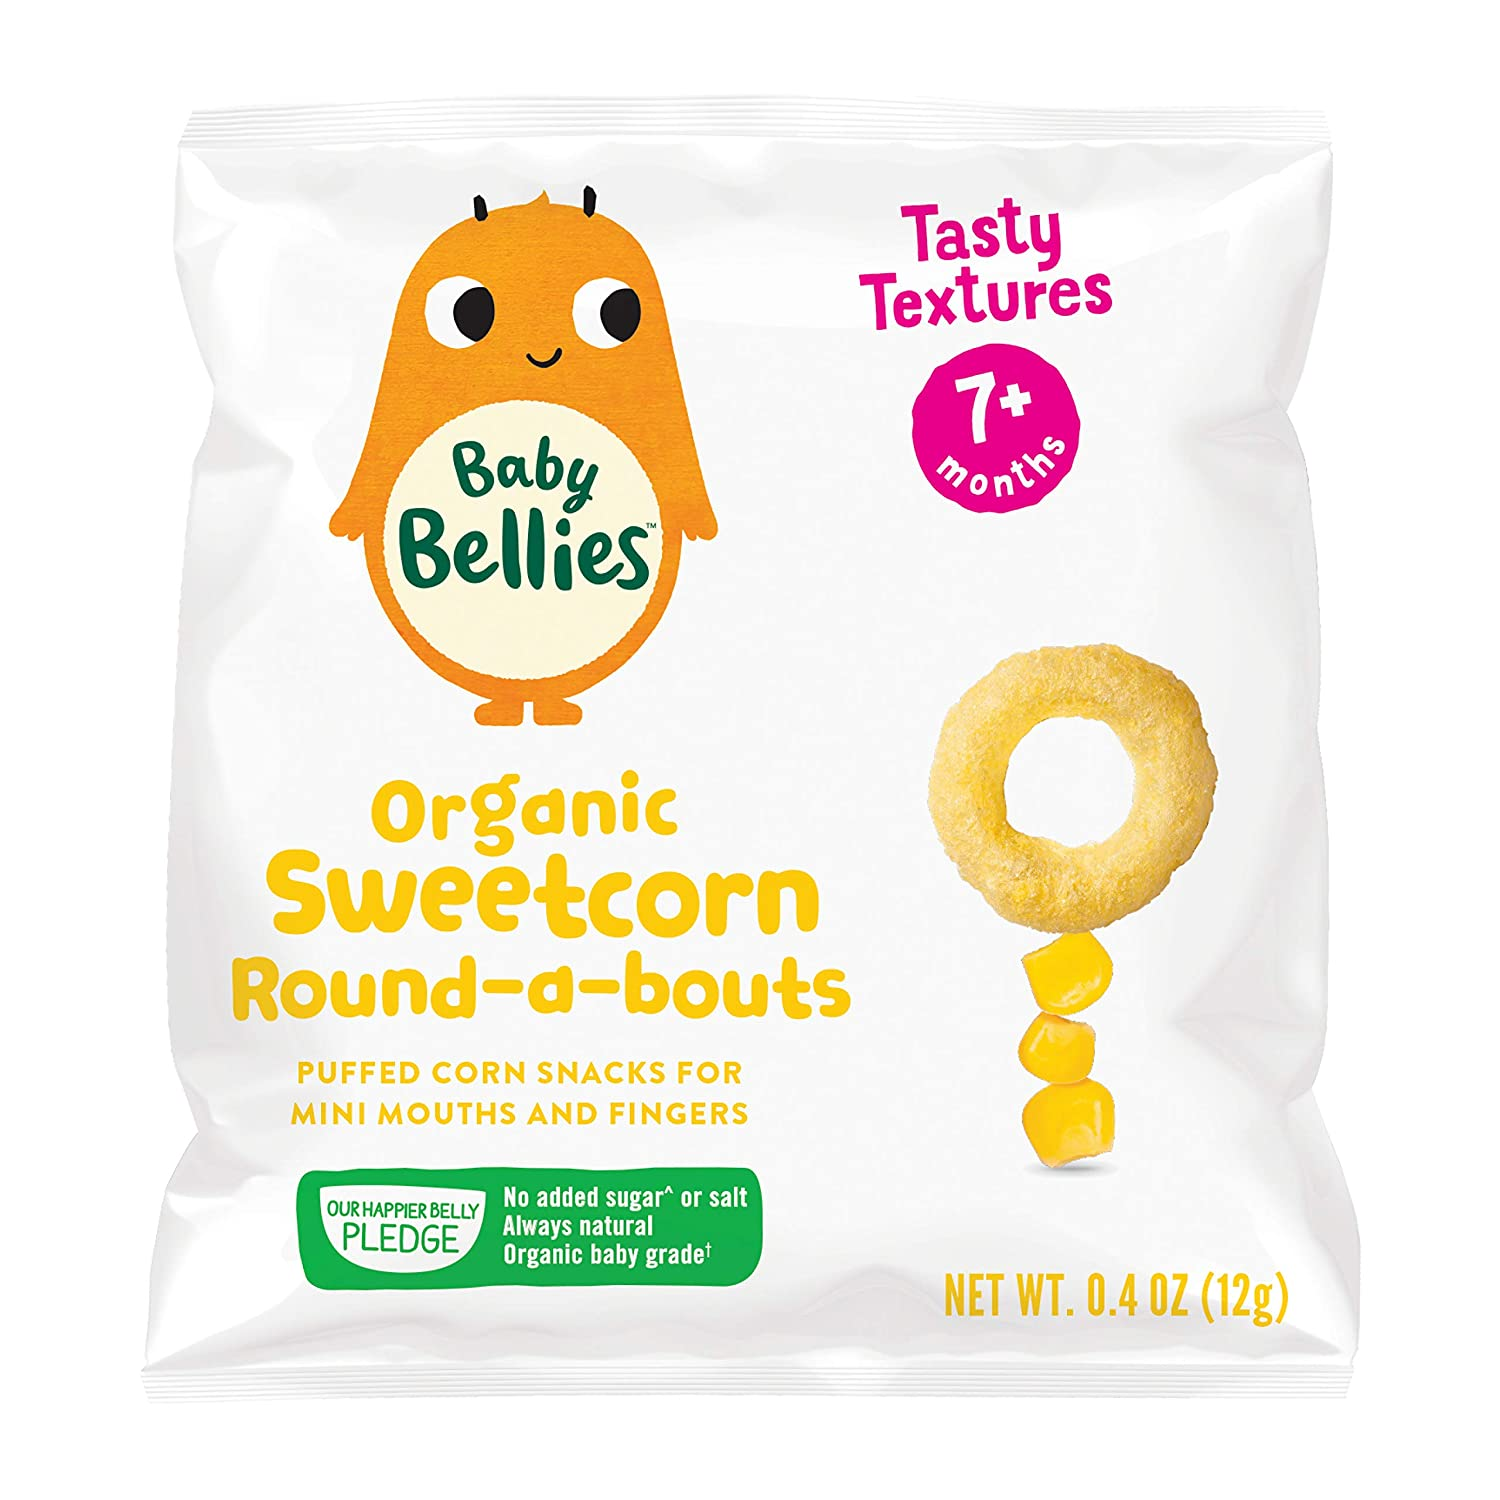 Baby Bellies Organic Sweetcorn Round-a-bouts, 6 pack of individual snack brands